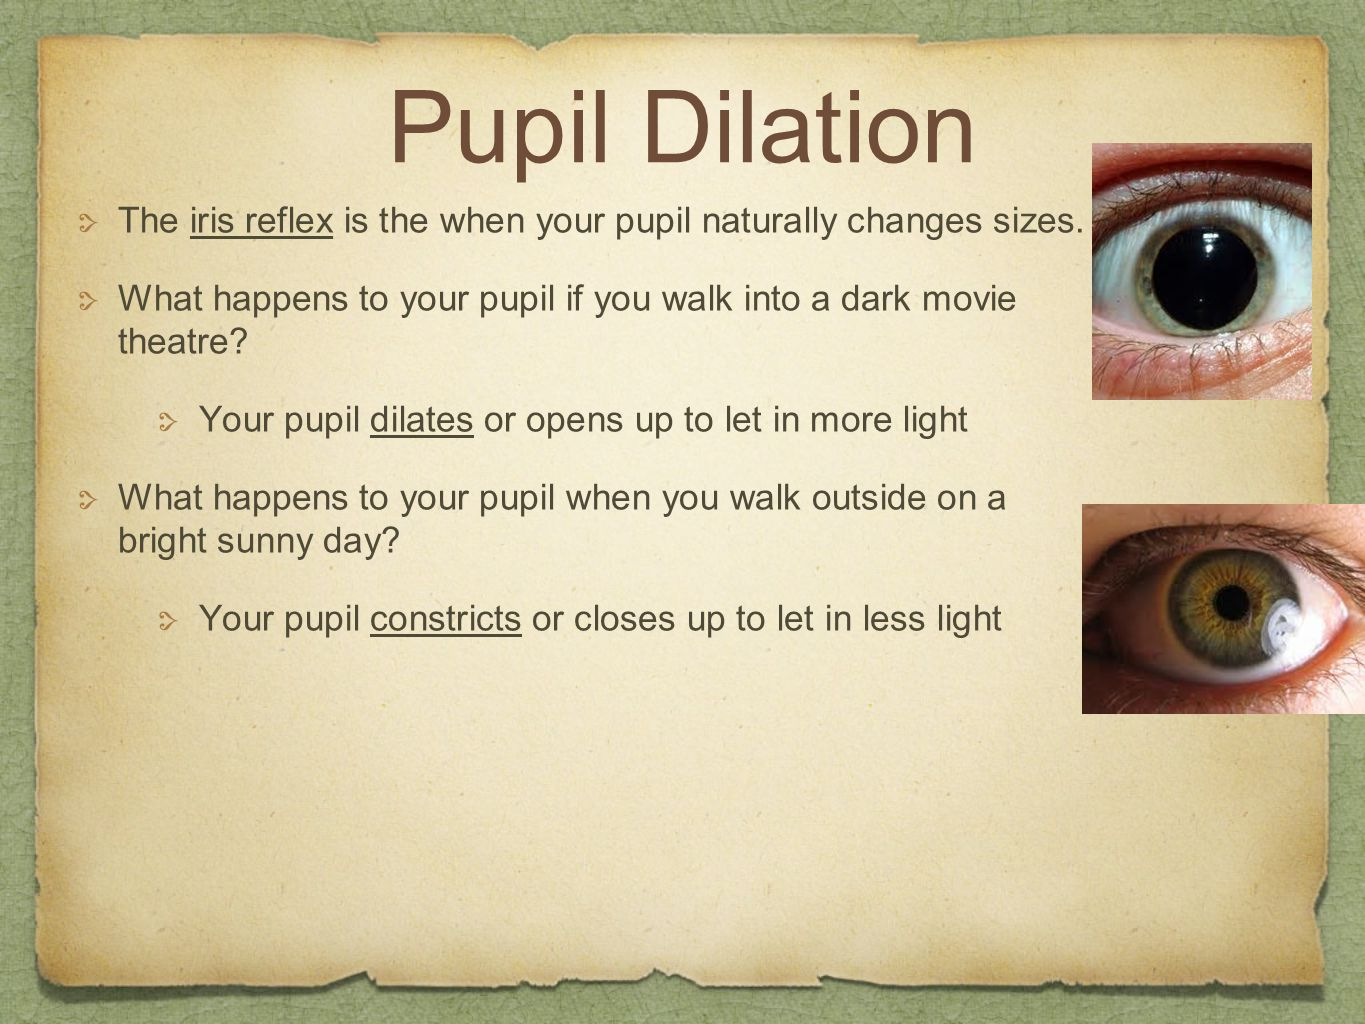 Pupil Dilation The iris reflex is the when your pupil naturally changes sizes. What happens to your pupil if you walk into a dark movie theatre? Your